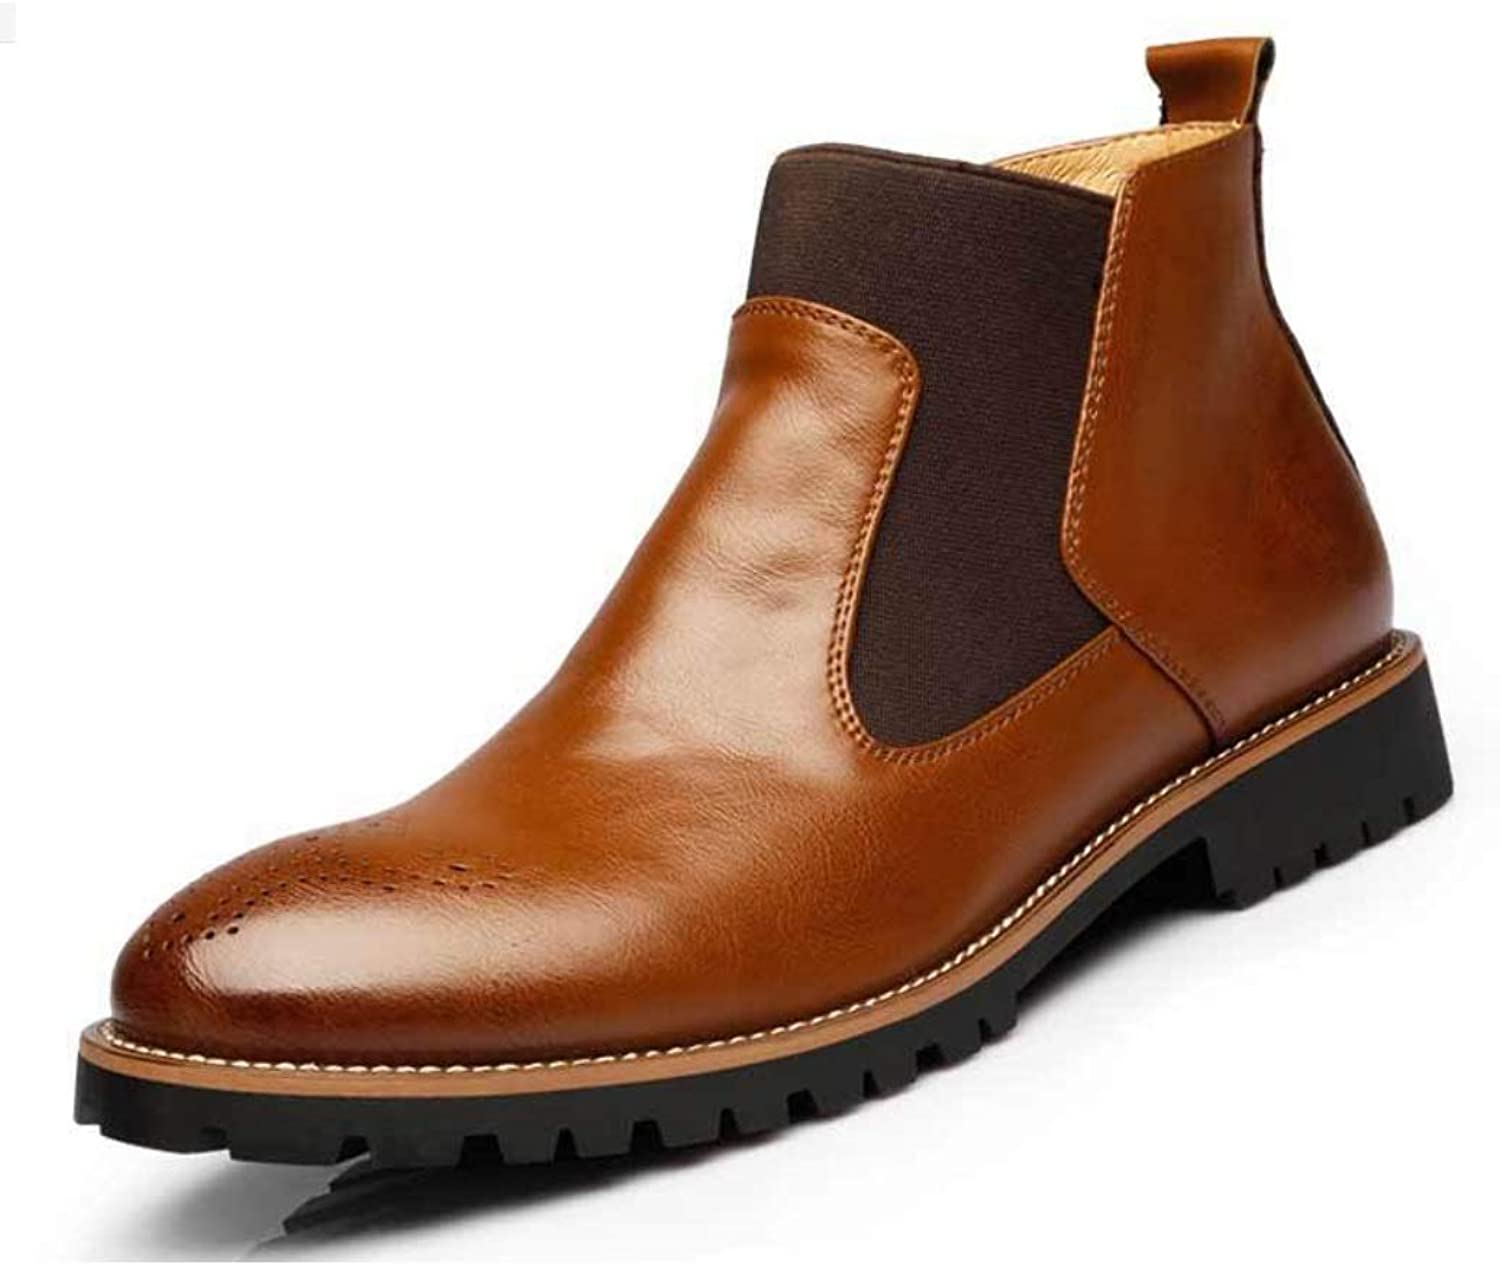 Men's Leather Boots High to Help Men's shoes England Large Size Martin Boots Men's Boots Tooling Boots